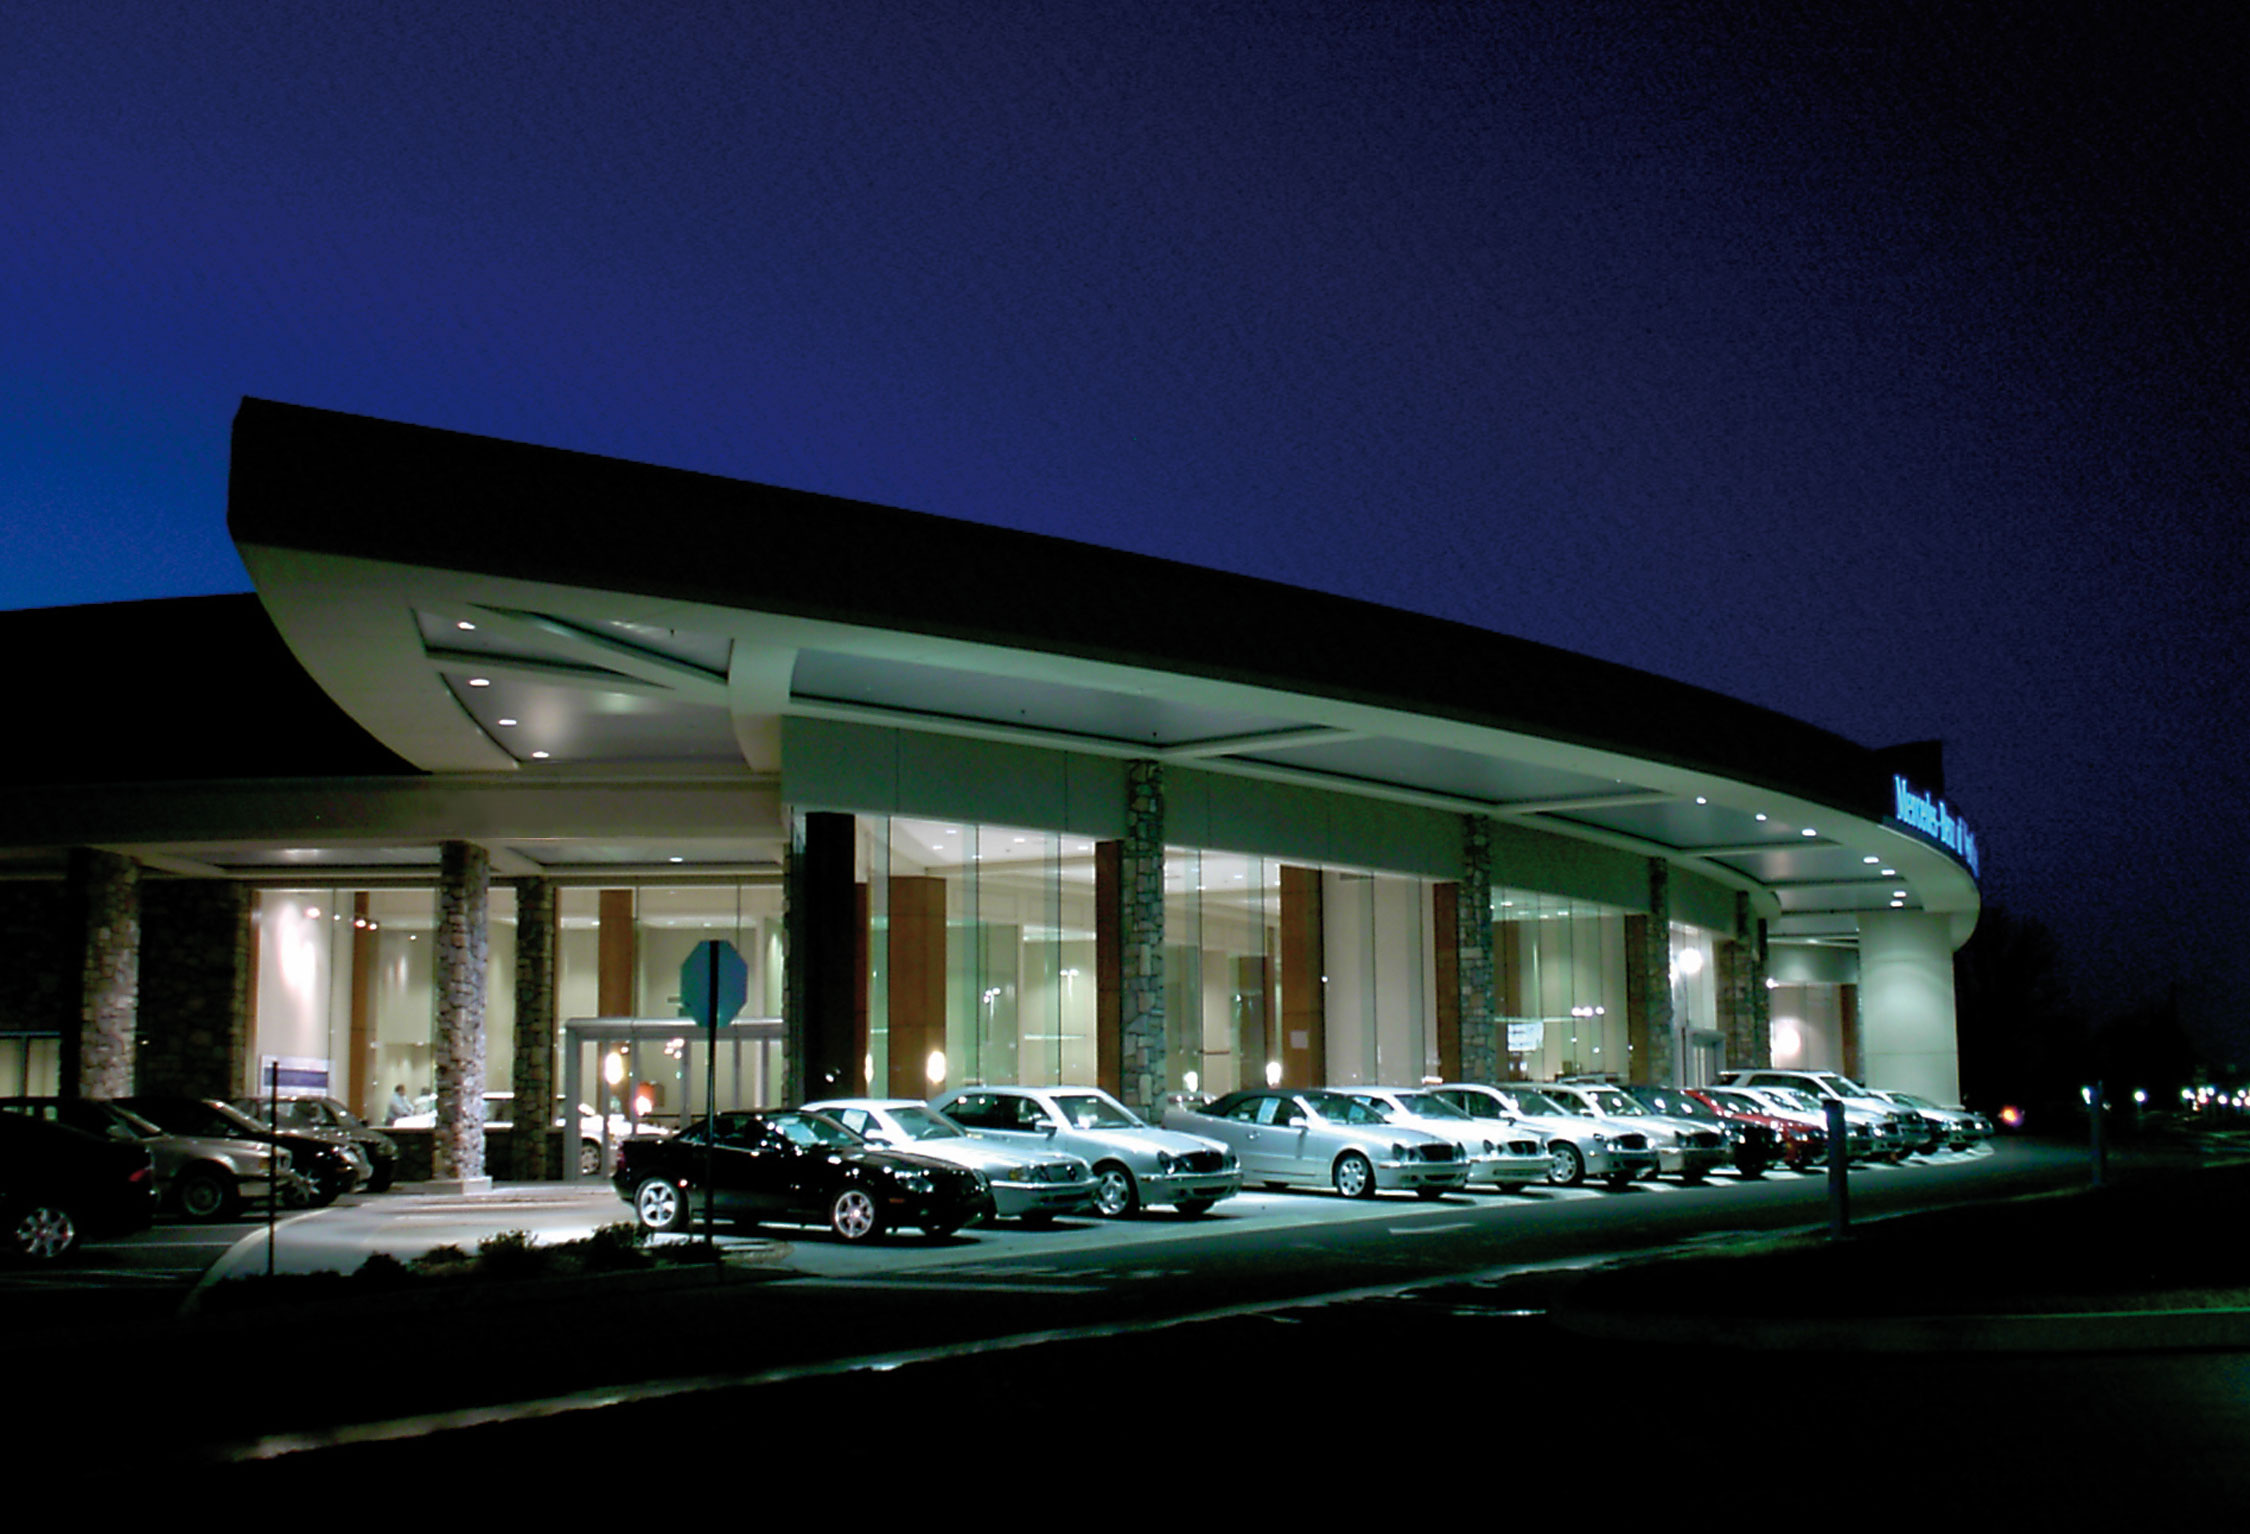 Mercedes Benz Of West Chester, Now One Of The Largest And Most  State Of The Art Auto Dealerships In The Country, Is An Impressive  150,000sf Resting On A ...